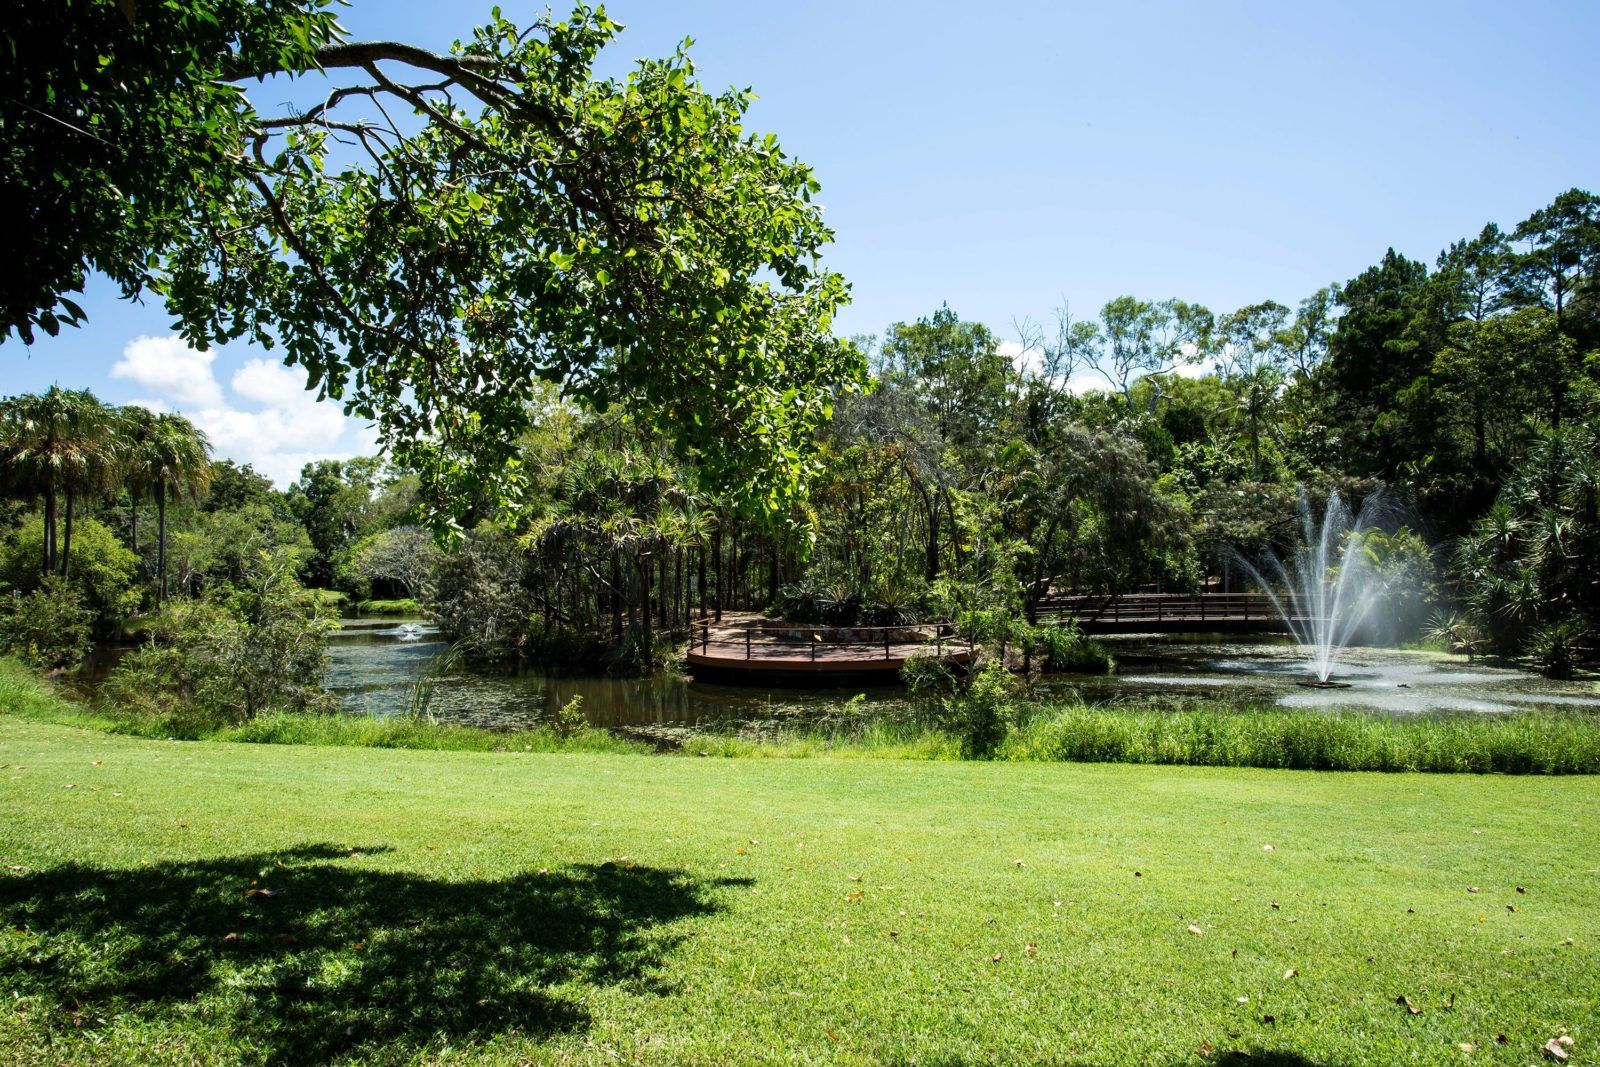 photo showing the wetland area with fountain spraying water into the air